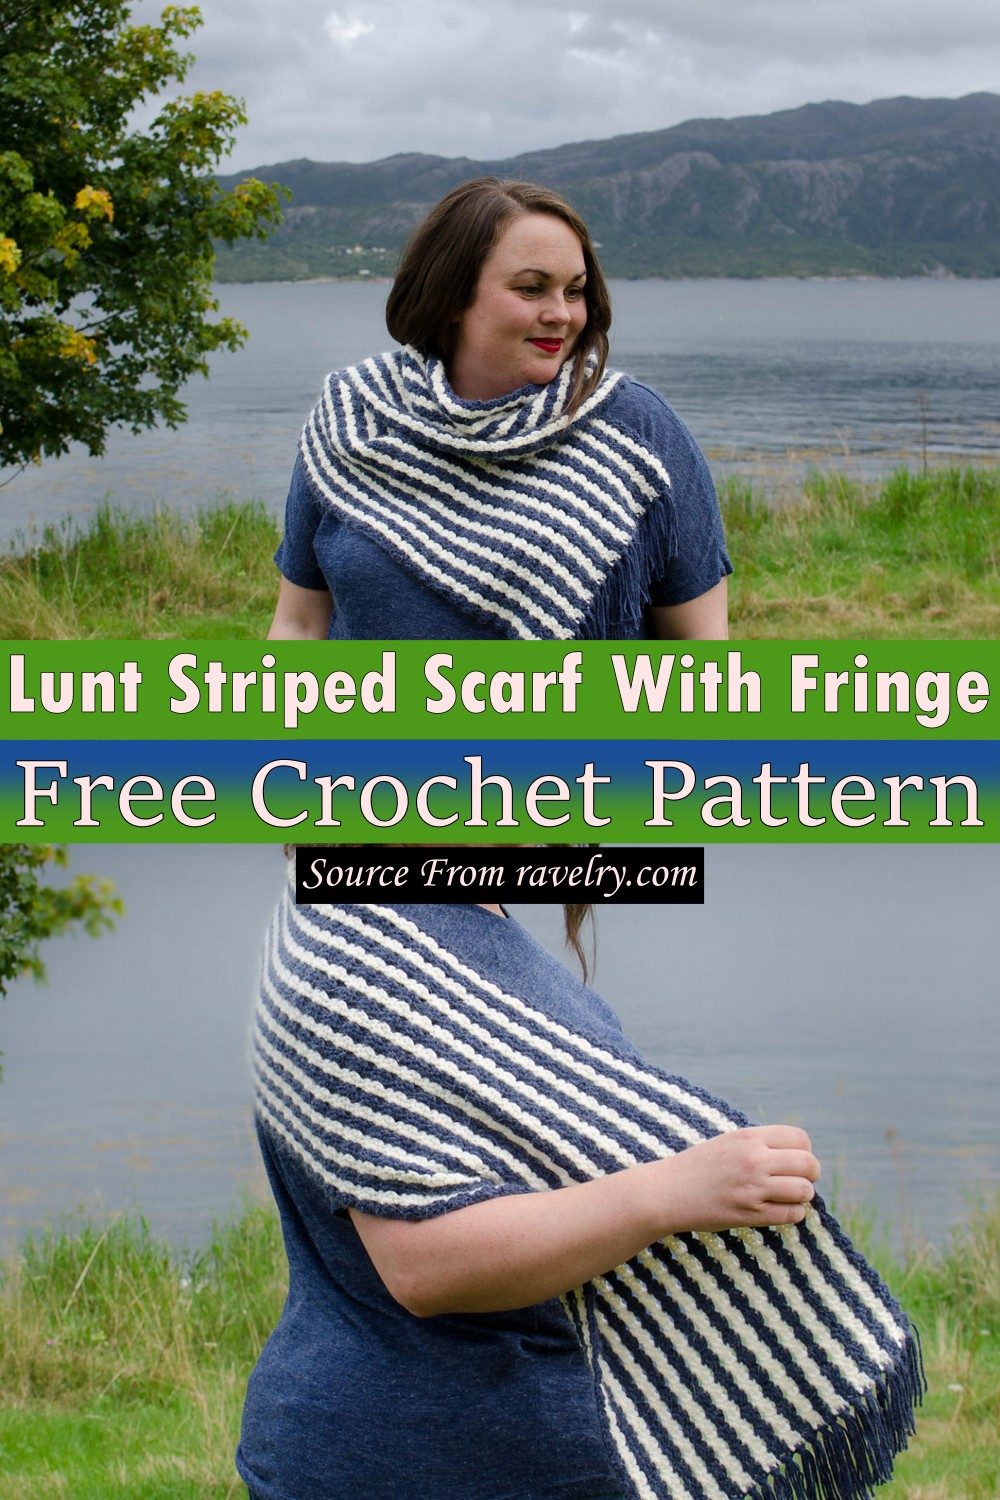 Free Crochet Lunt Striped Scarf With Fringe Pattern